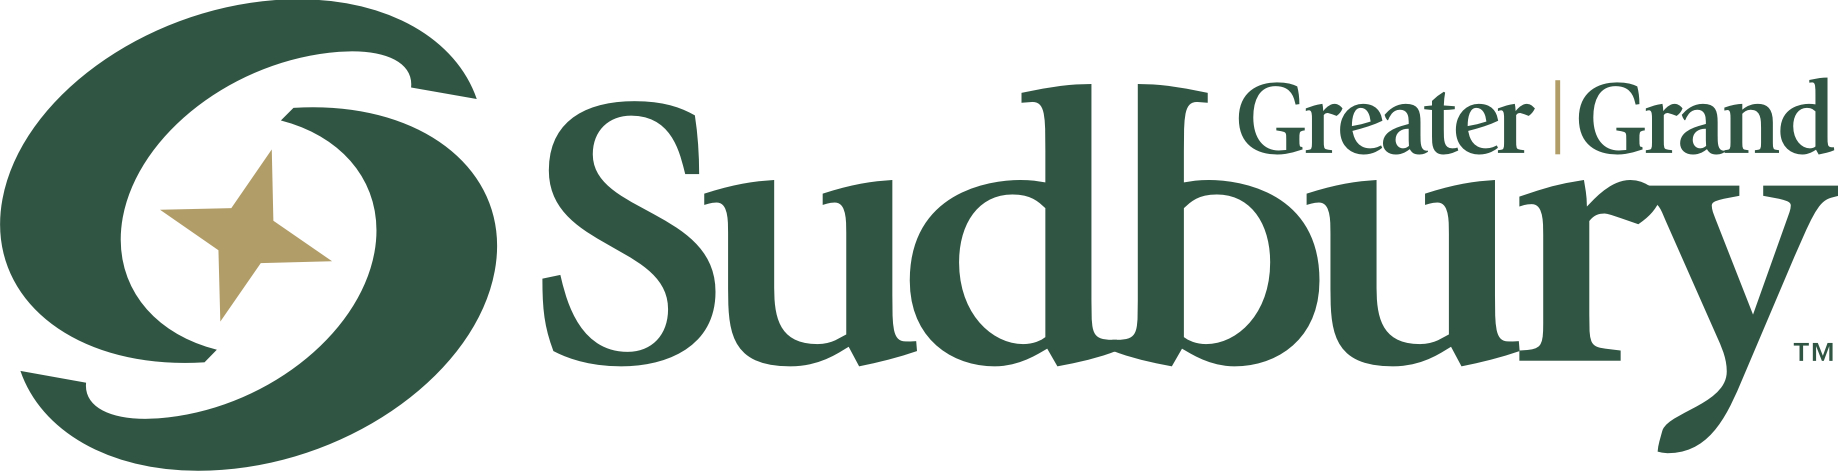 City of Greater Sudbury Logo